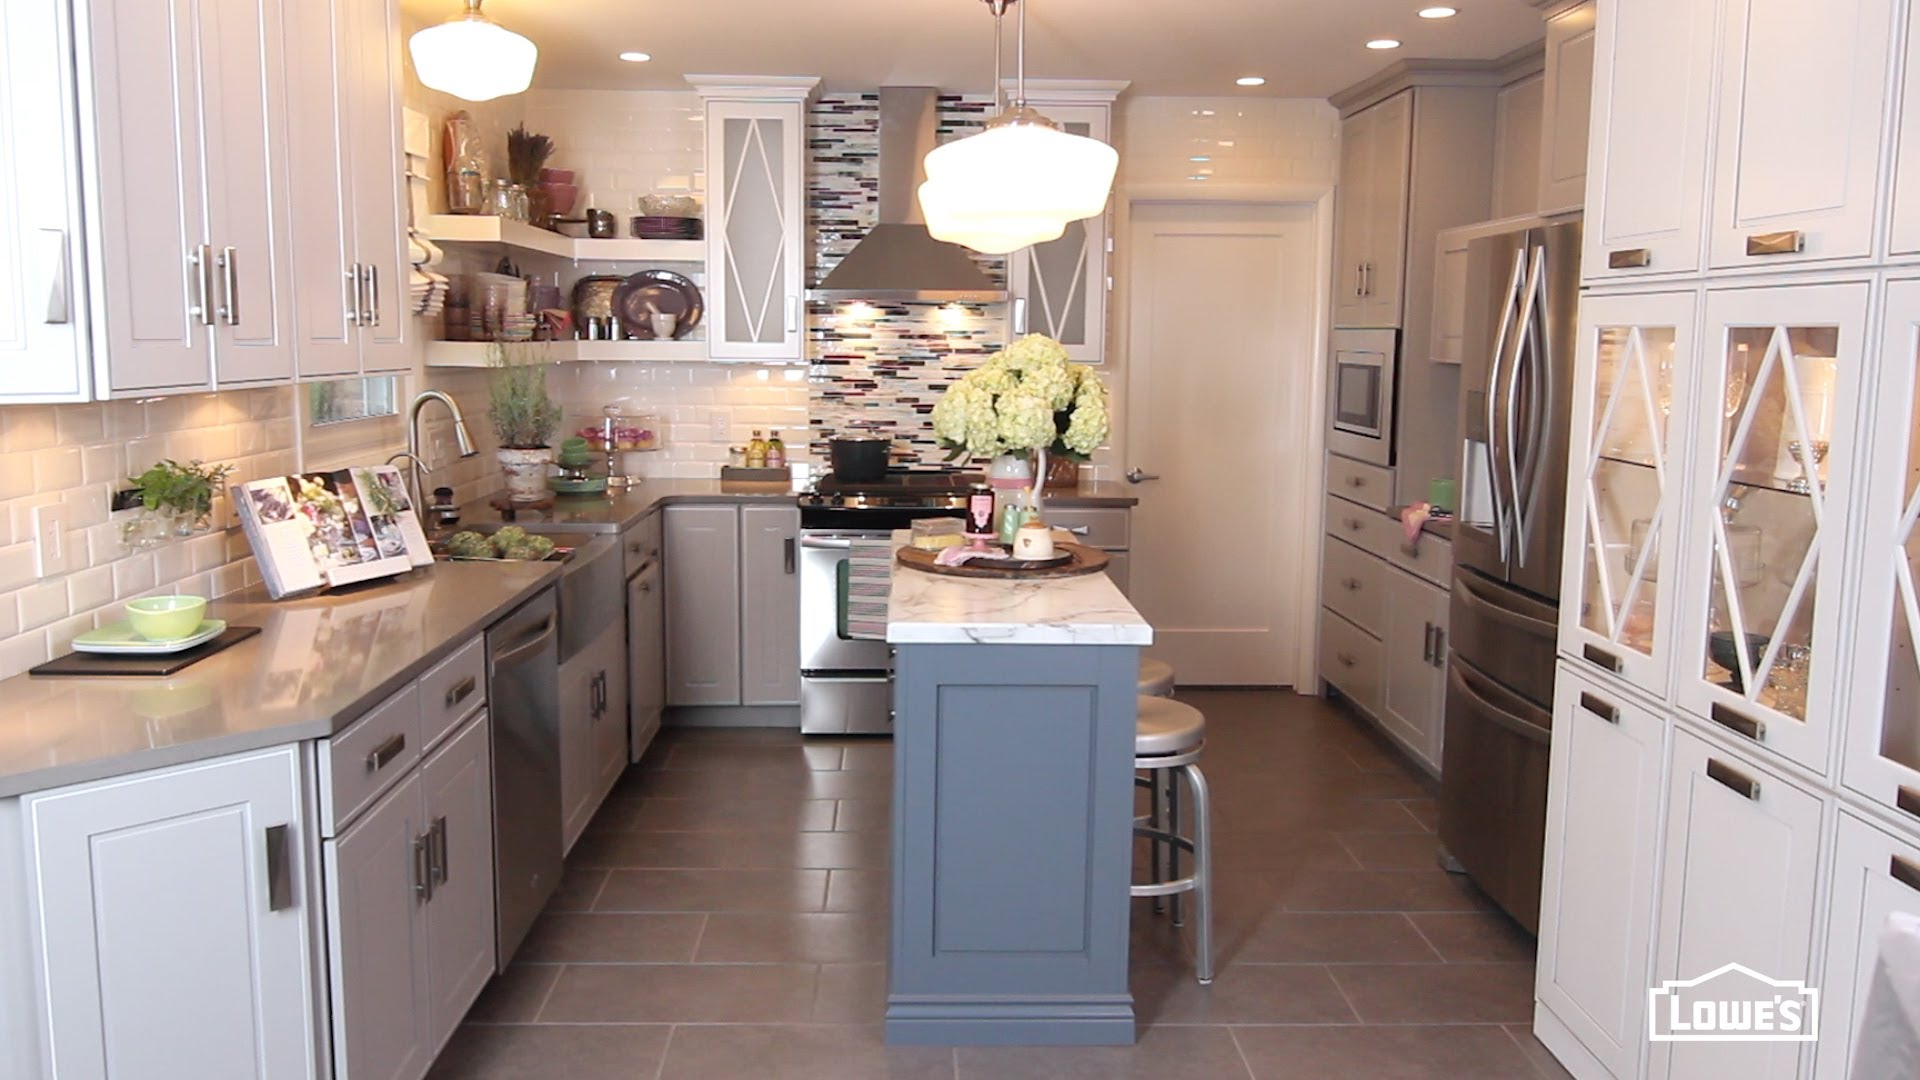 Charmant Small Kitchen Remodel Ideas